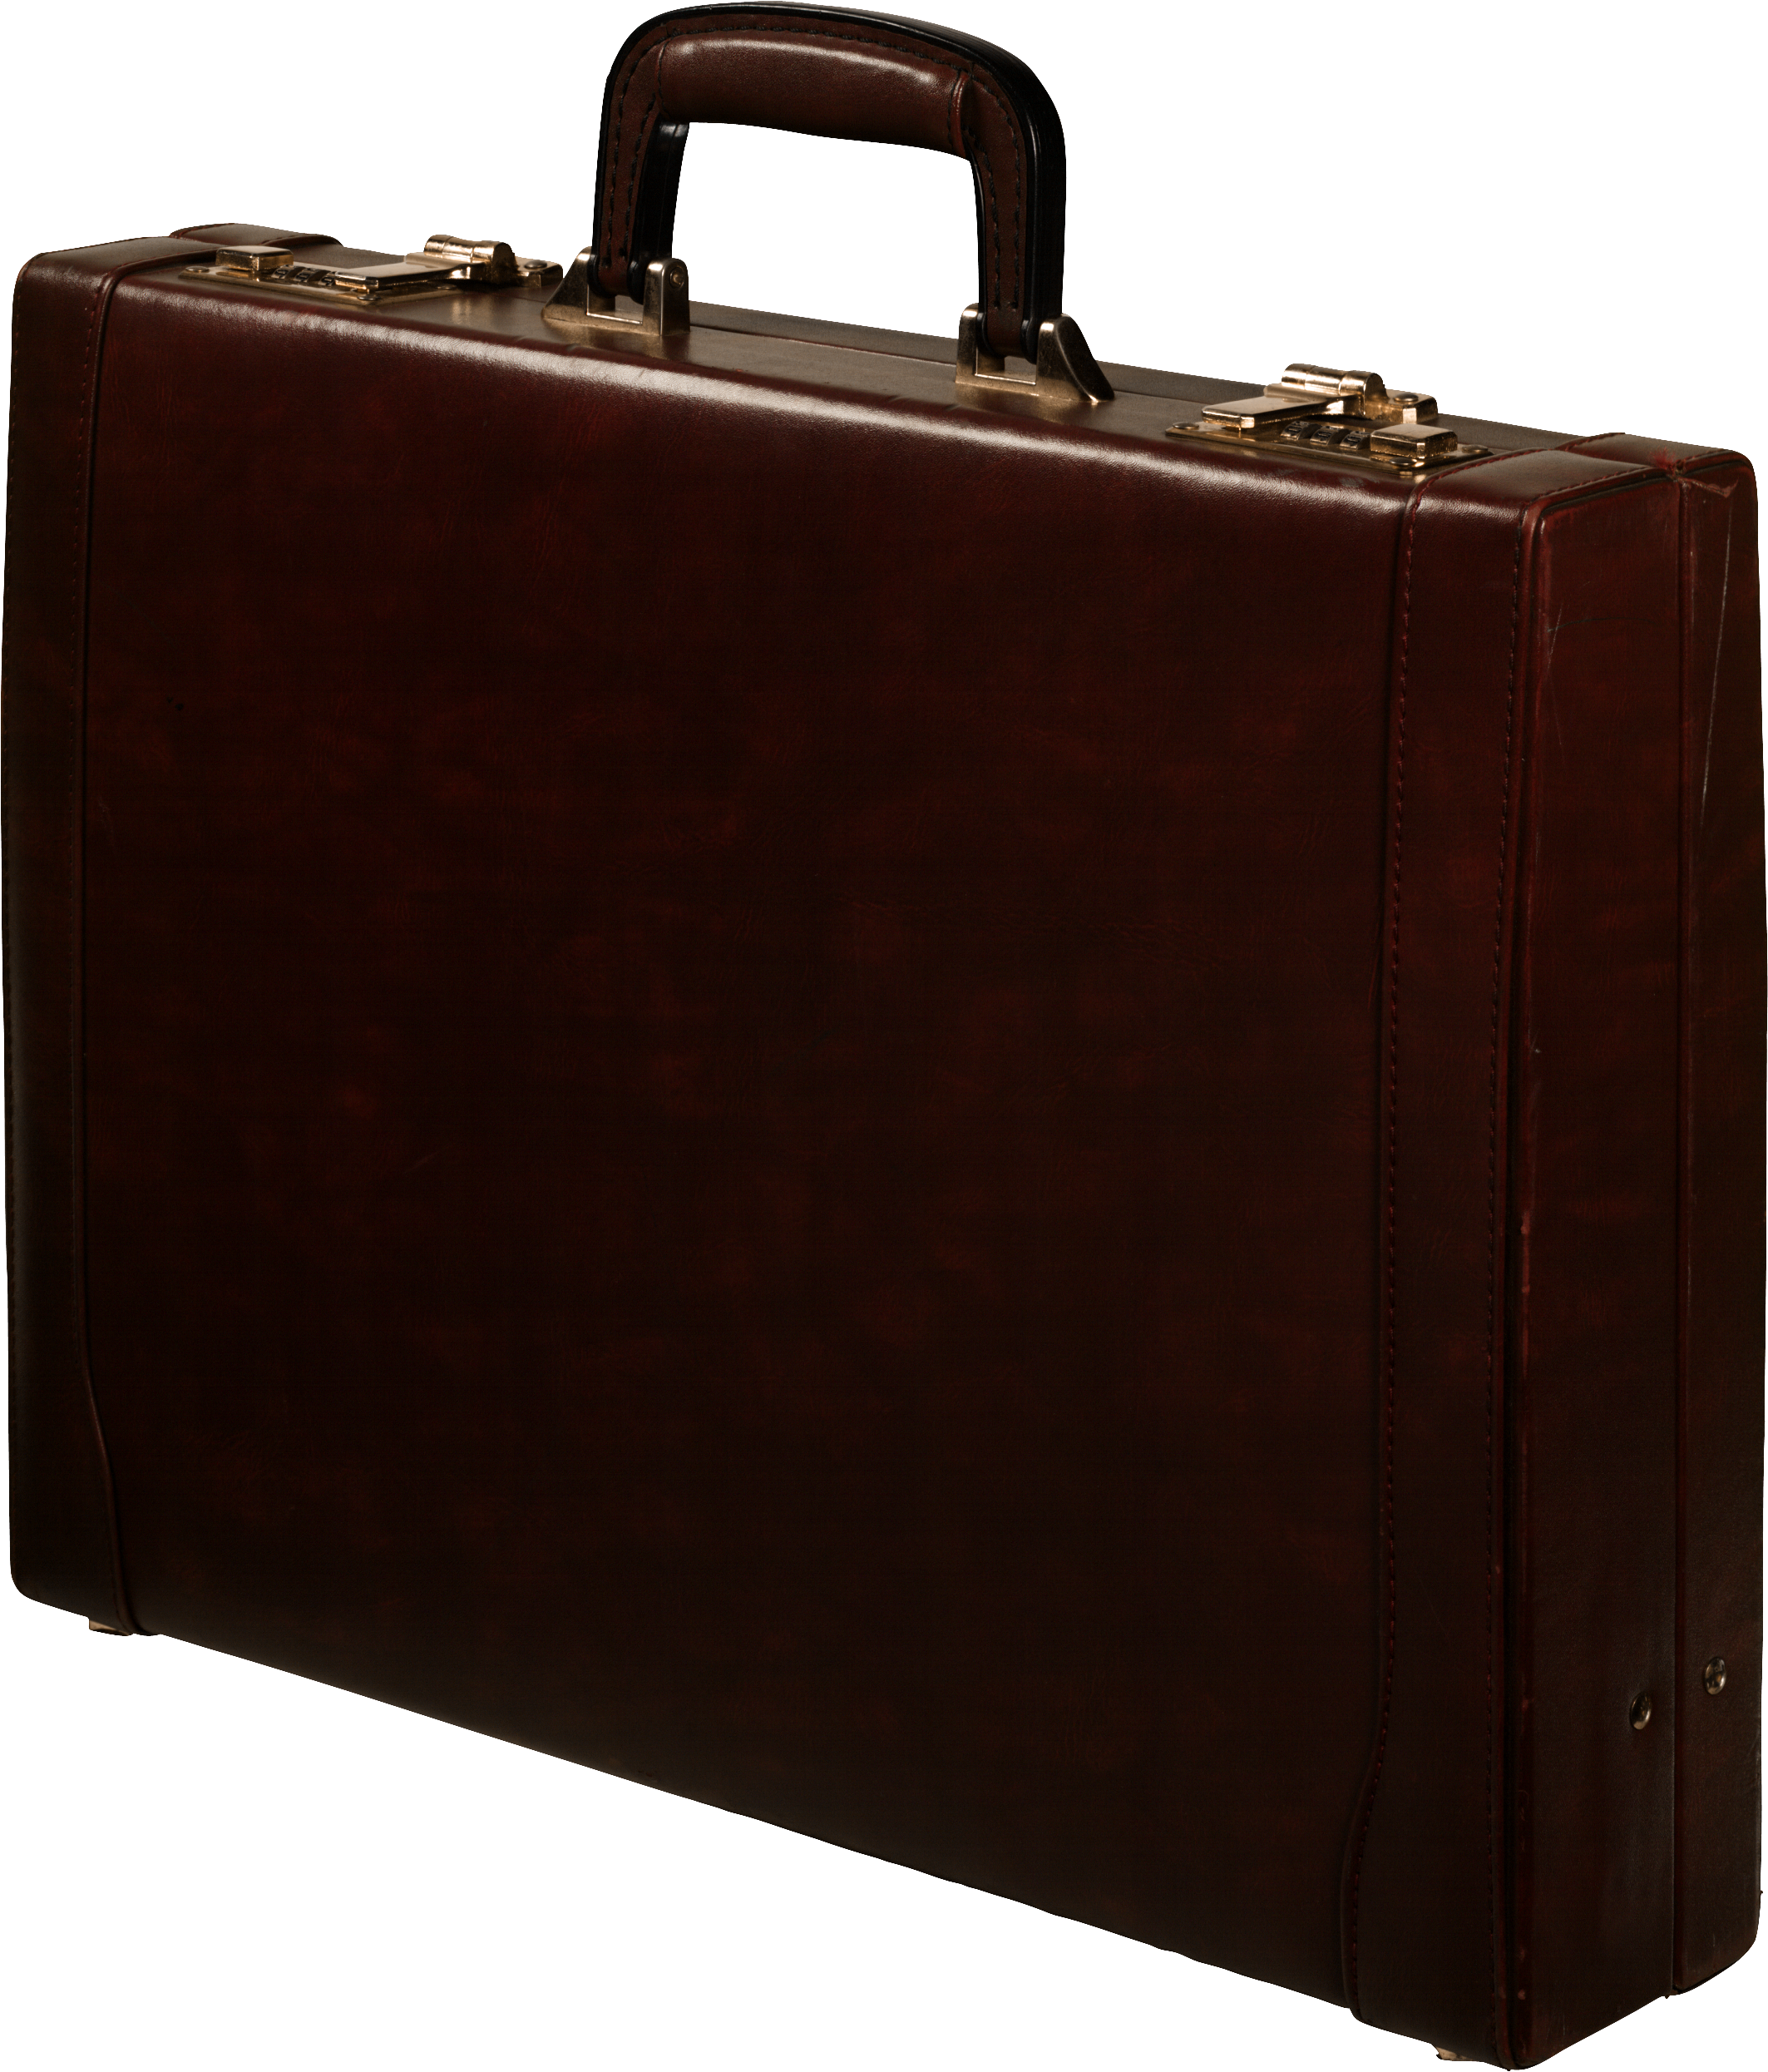 Briefcase HD PNG-PlusPNG.com-2126 - Briefcase HD PNG